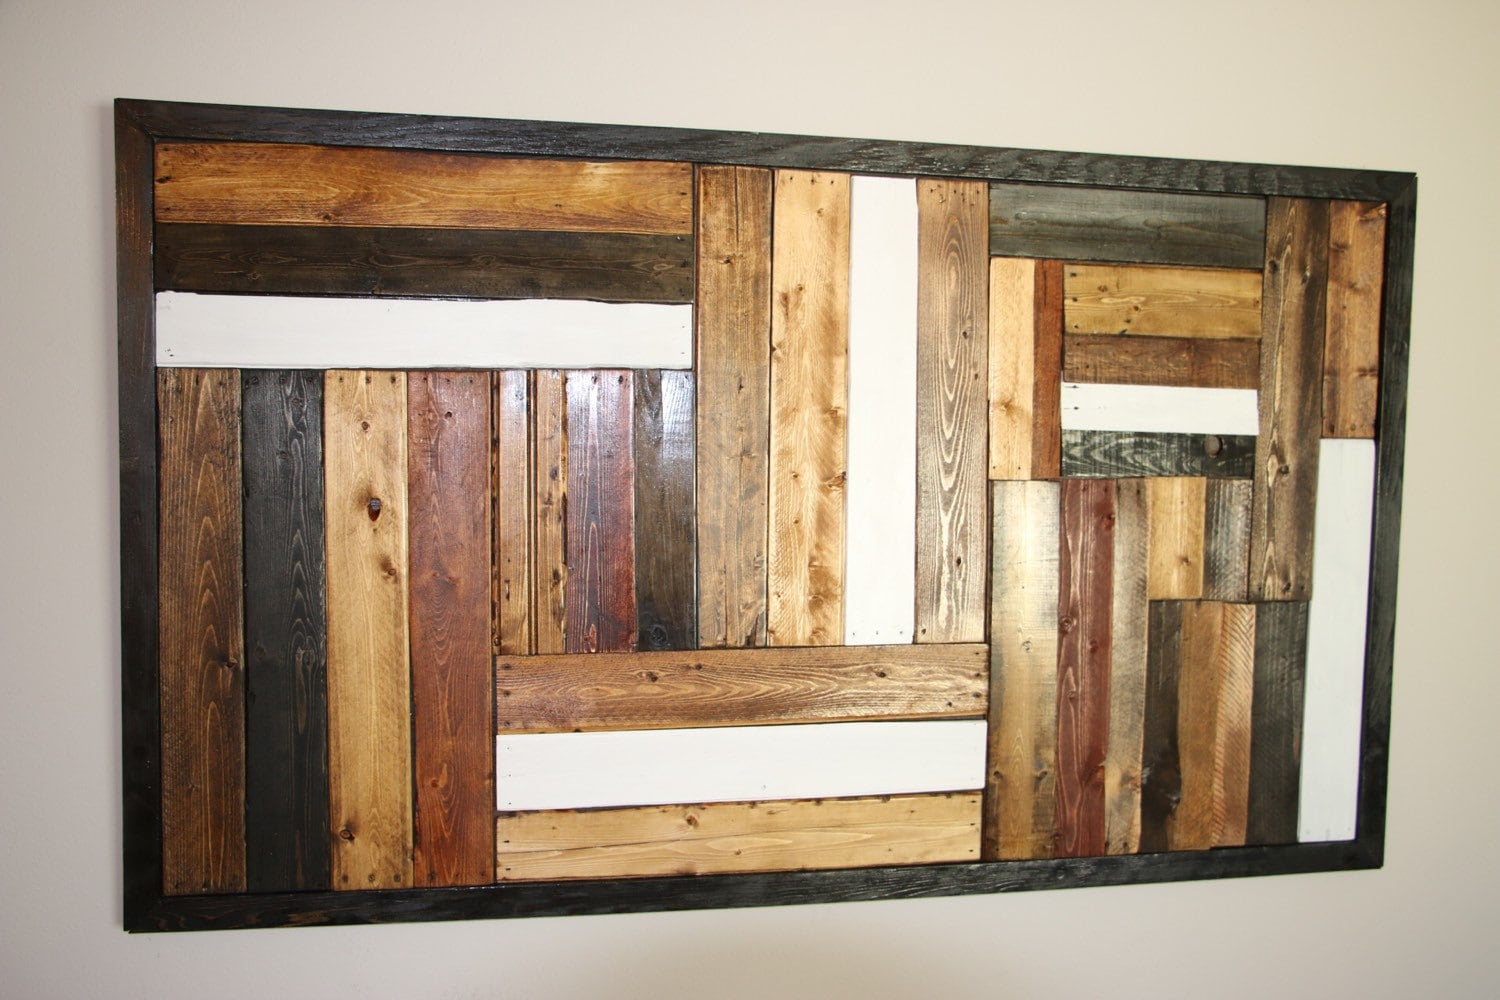 Wood Art Decor Custom Pallet Art Wood Art Wood Decor Pallet Decor Home Decor 2018